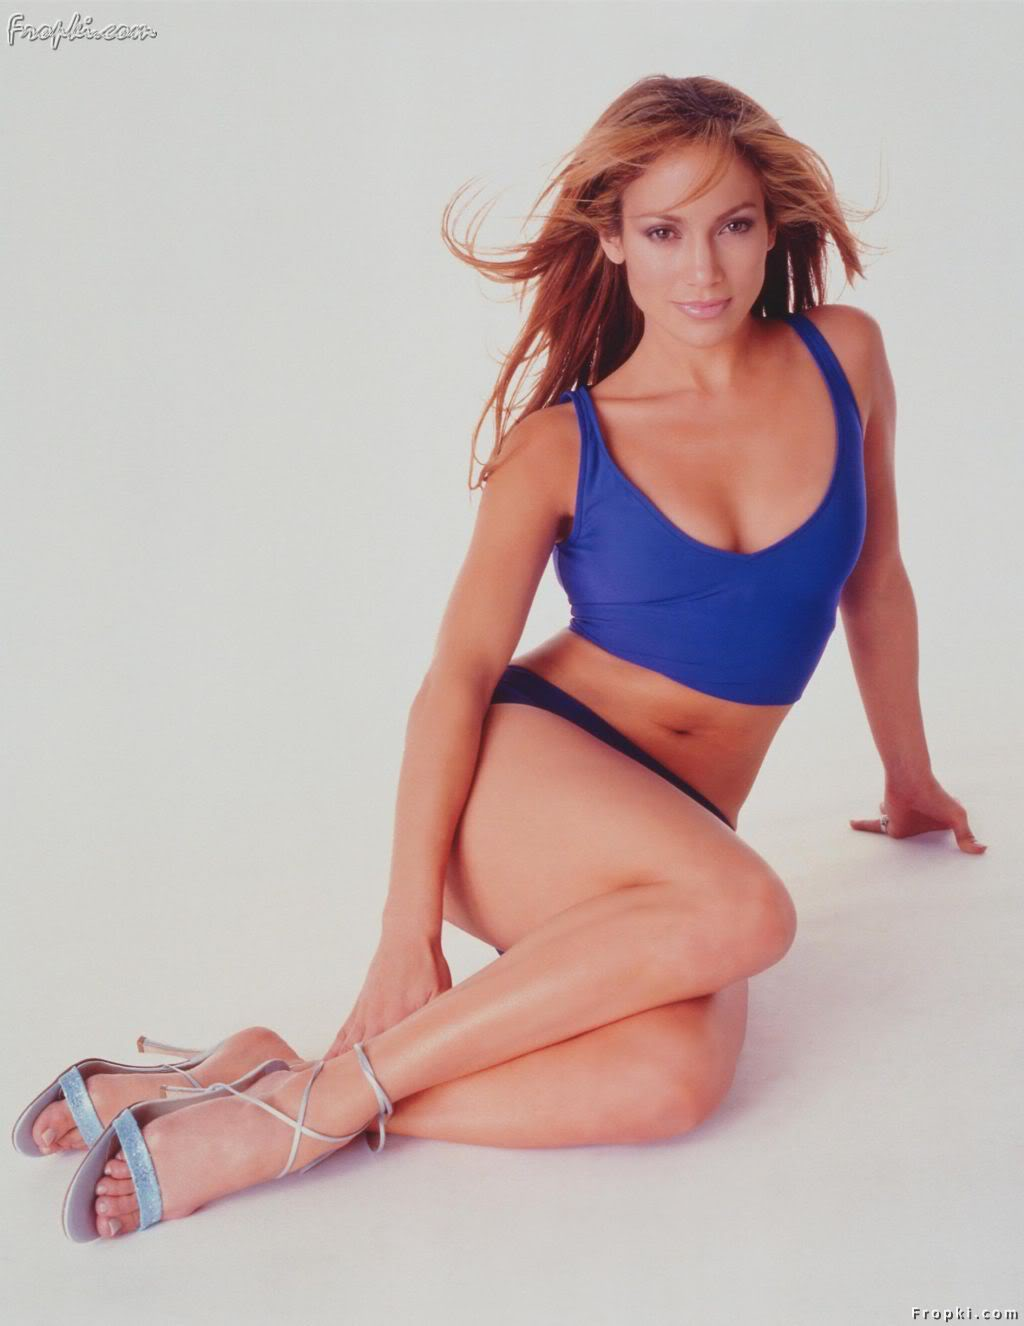 blogspotcom jennifer lopez - photo #43